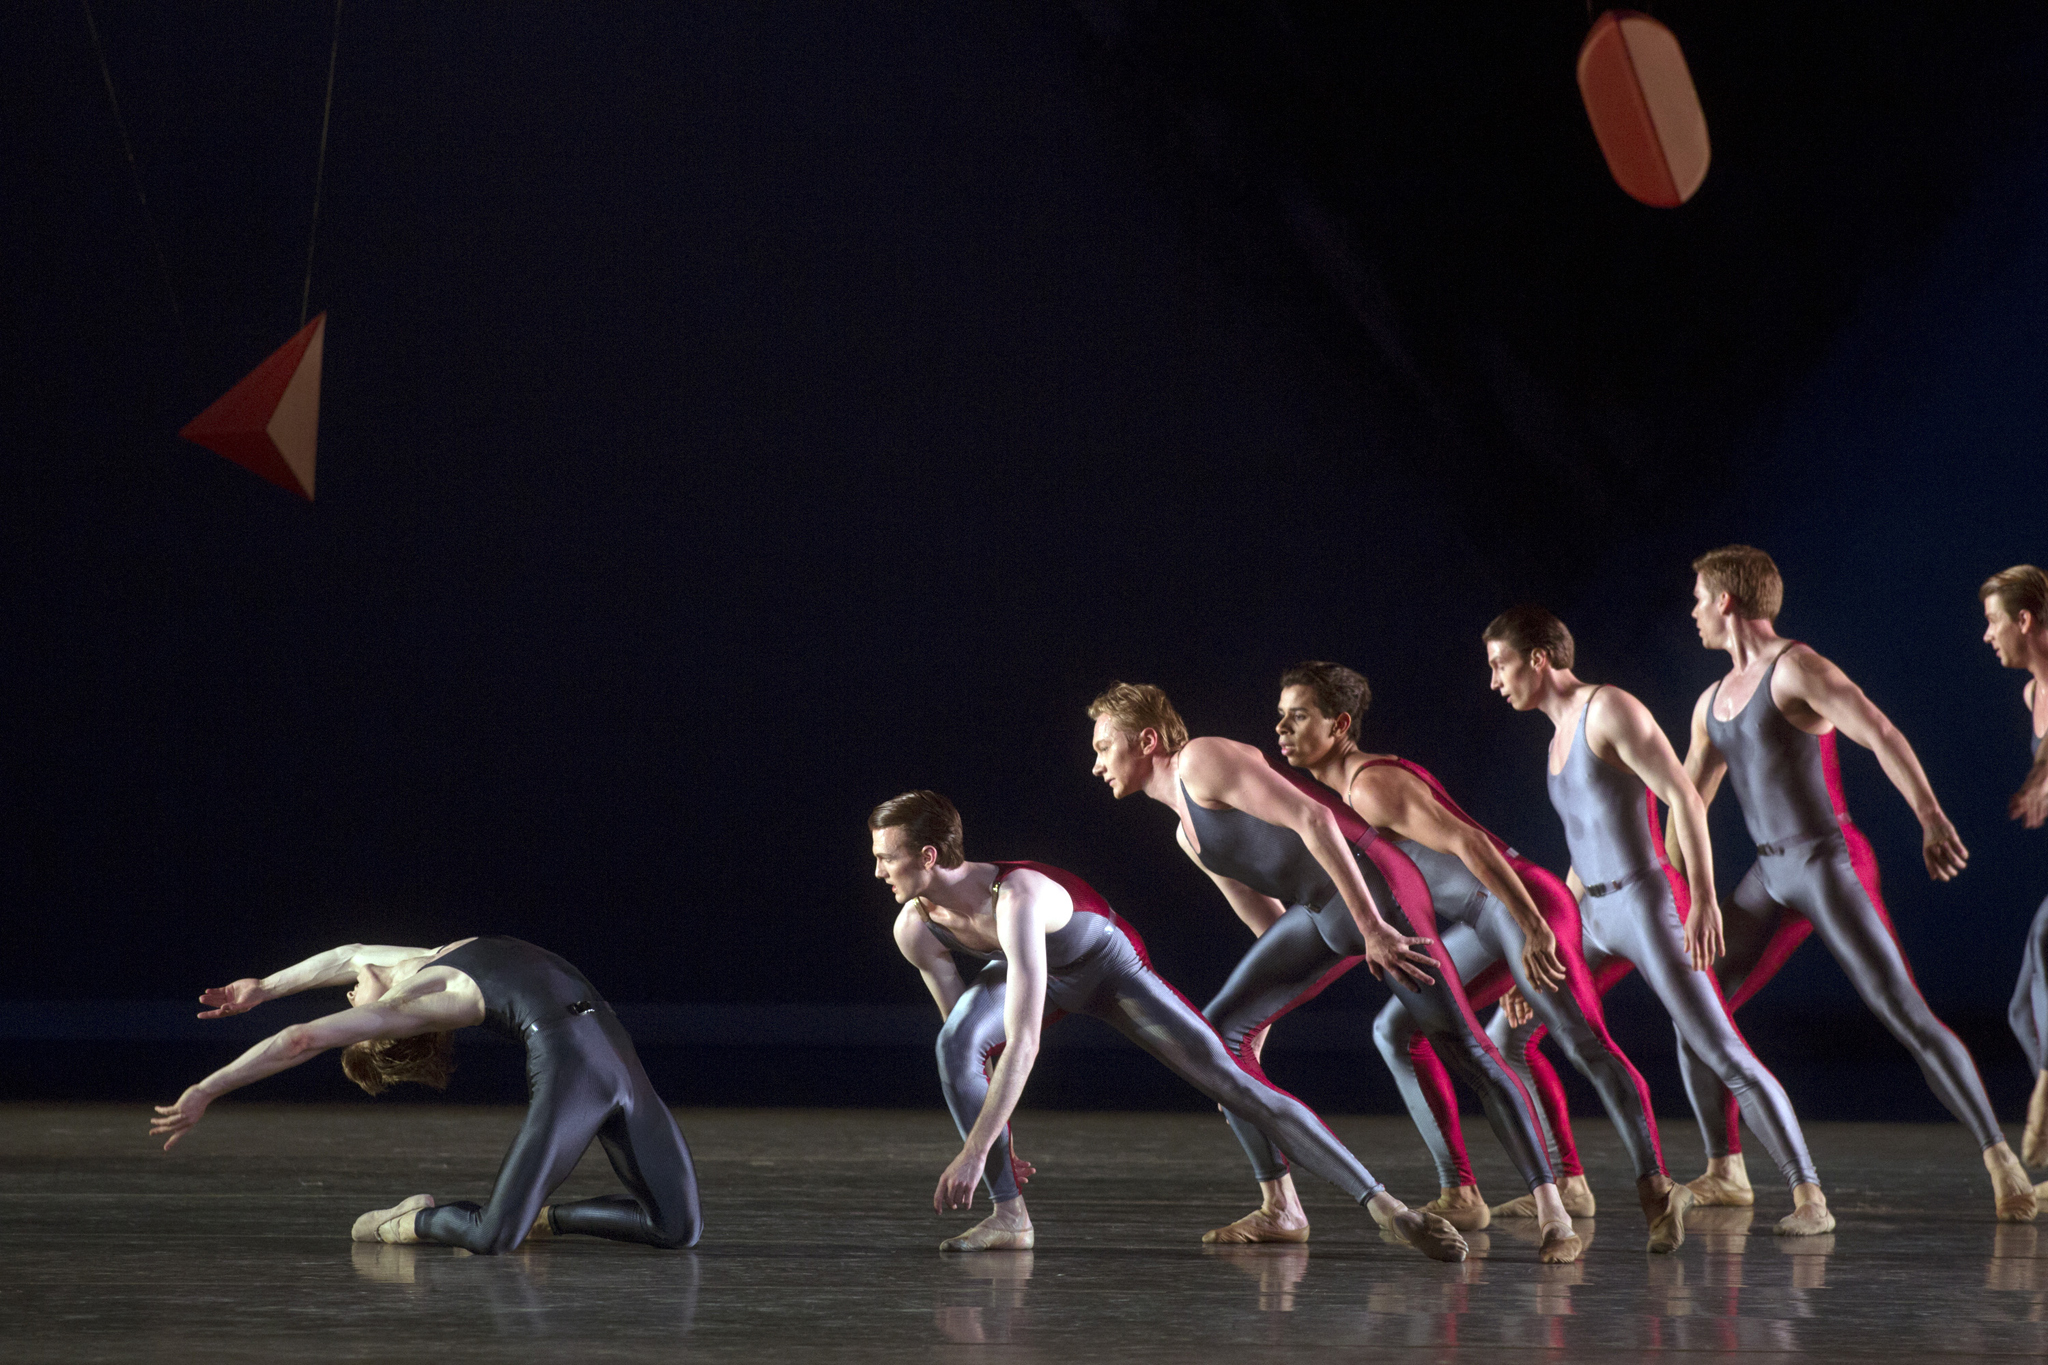 Dance: American Ballet Theatre Fall 2013